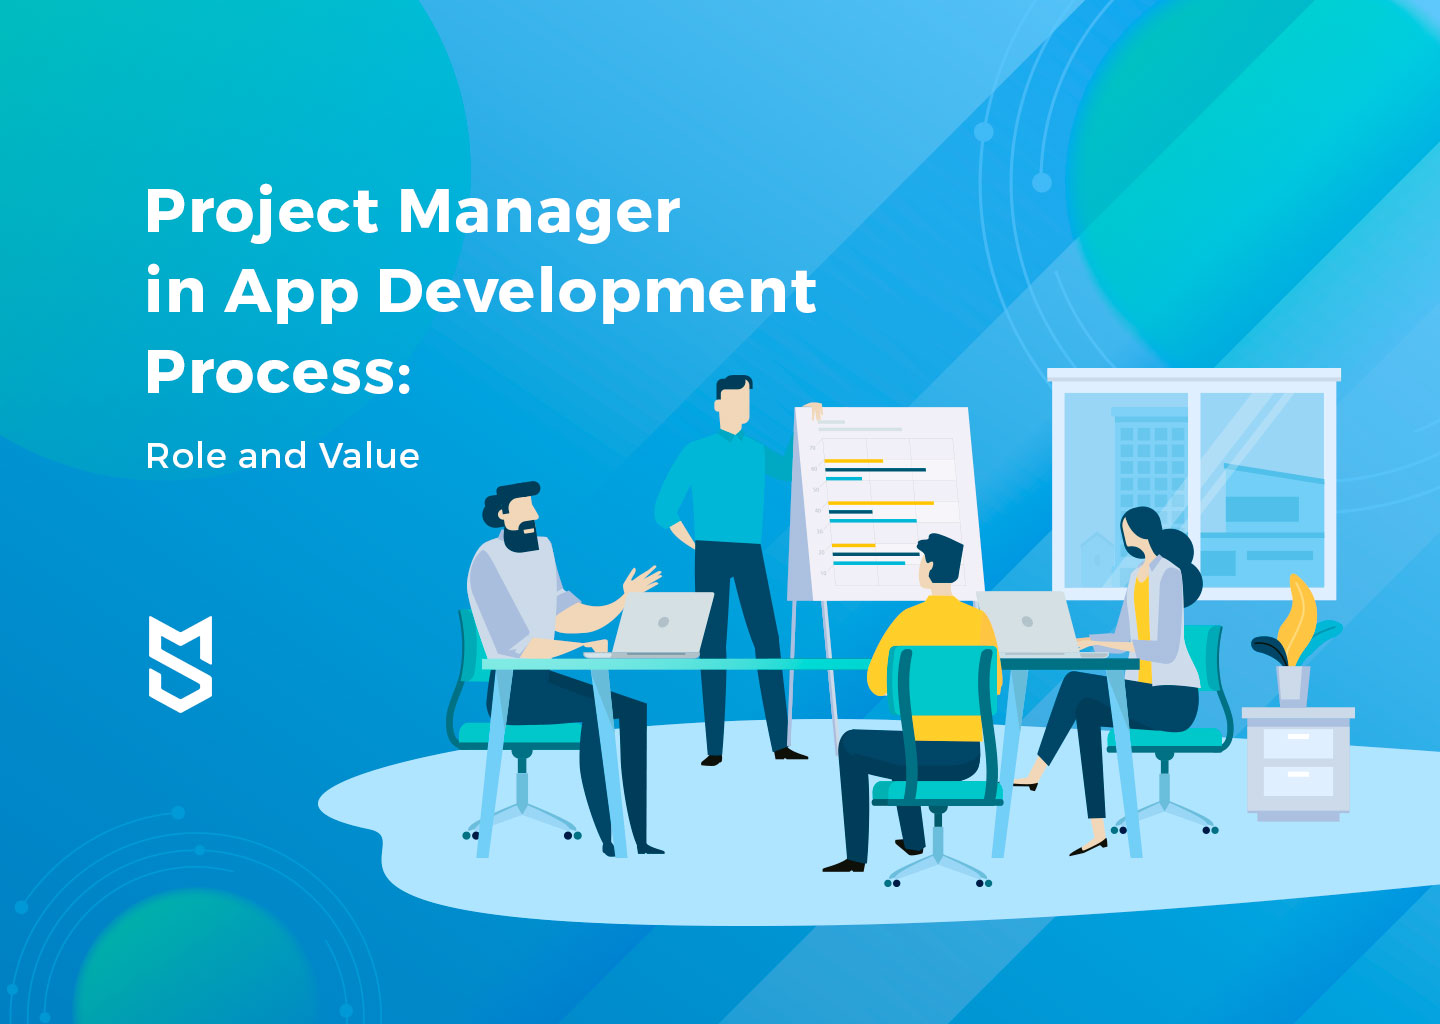 Project Manager Duties Responsibilities The Role And Value Of Project Managers In The App Development